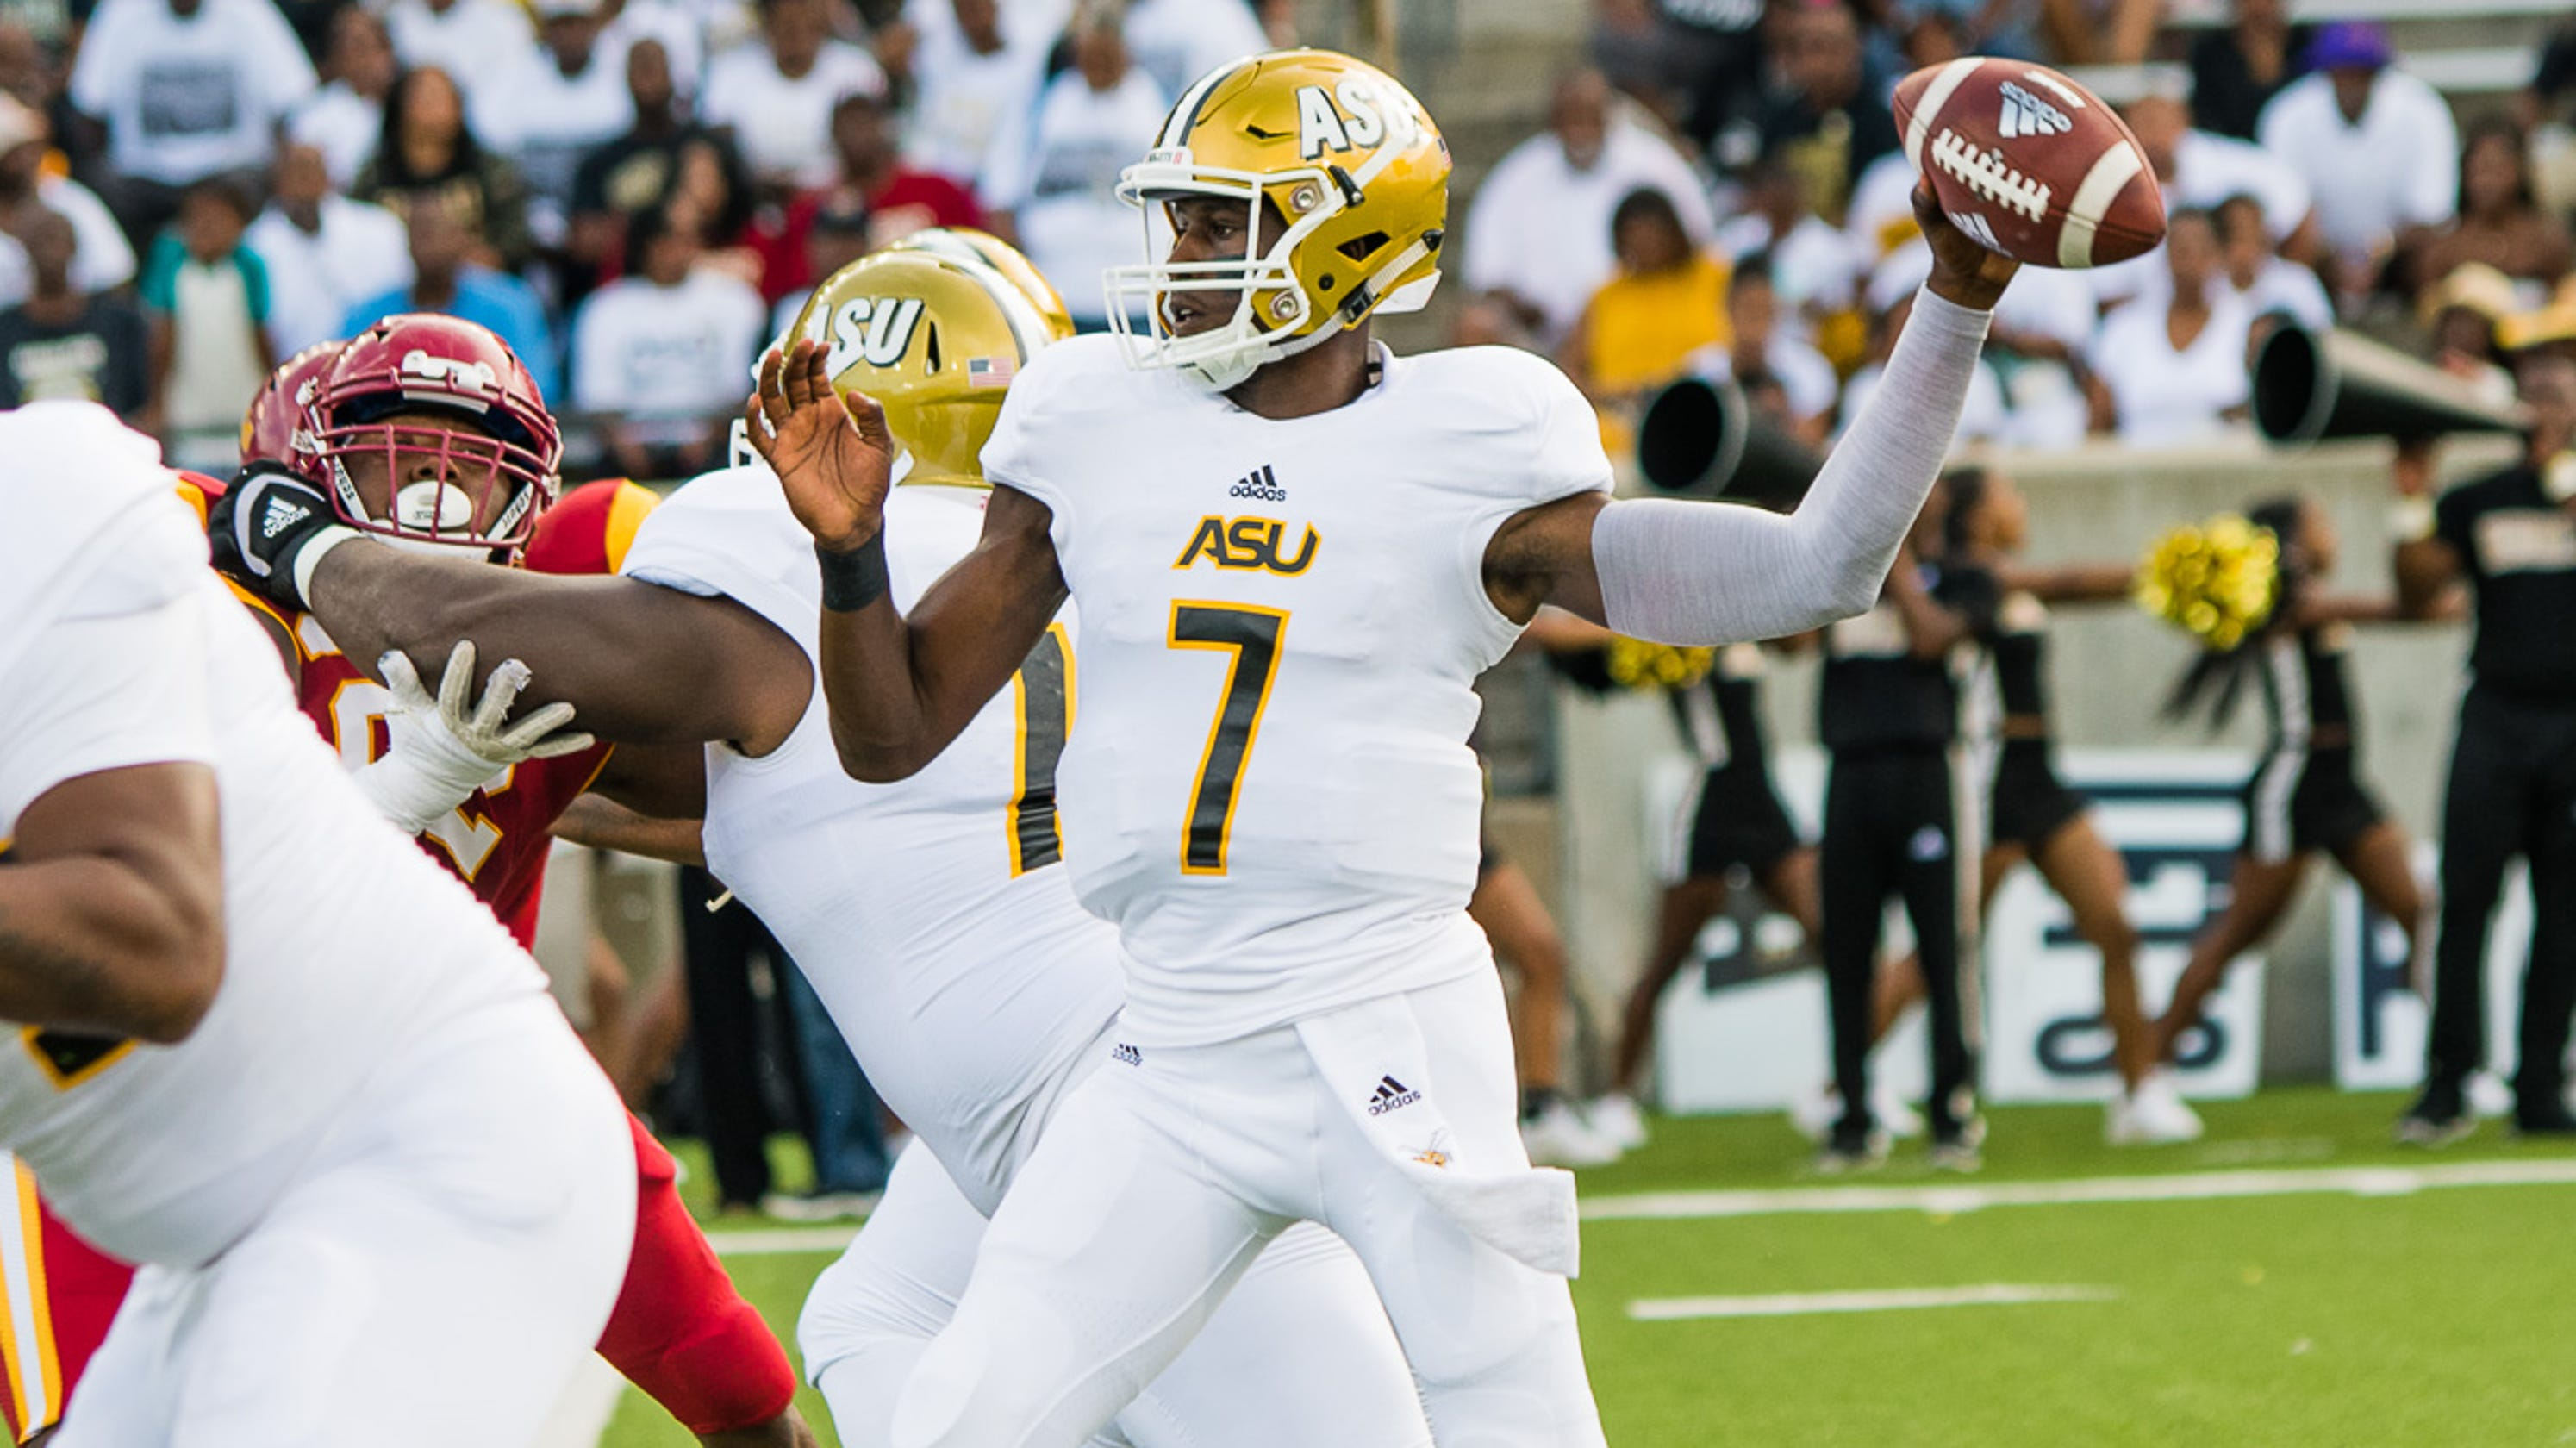 Alabama State works overtime to end Tuskegee streak, win ...